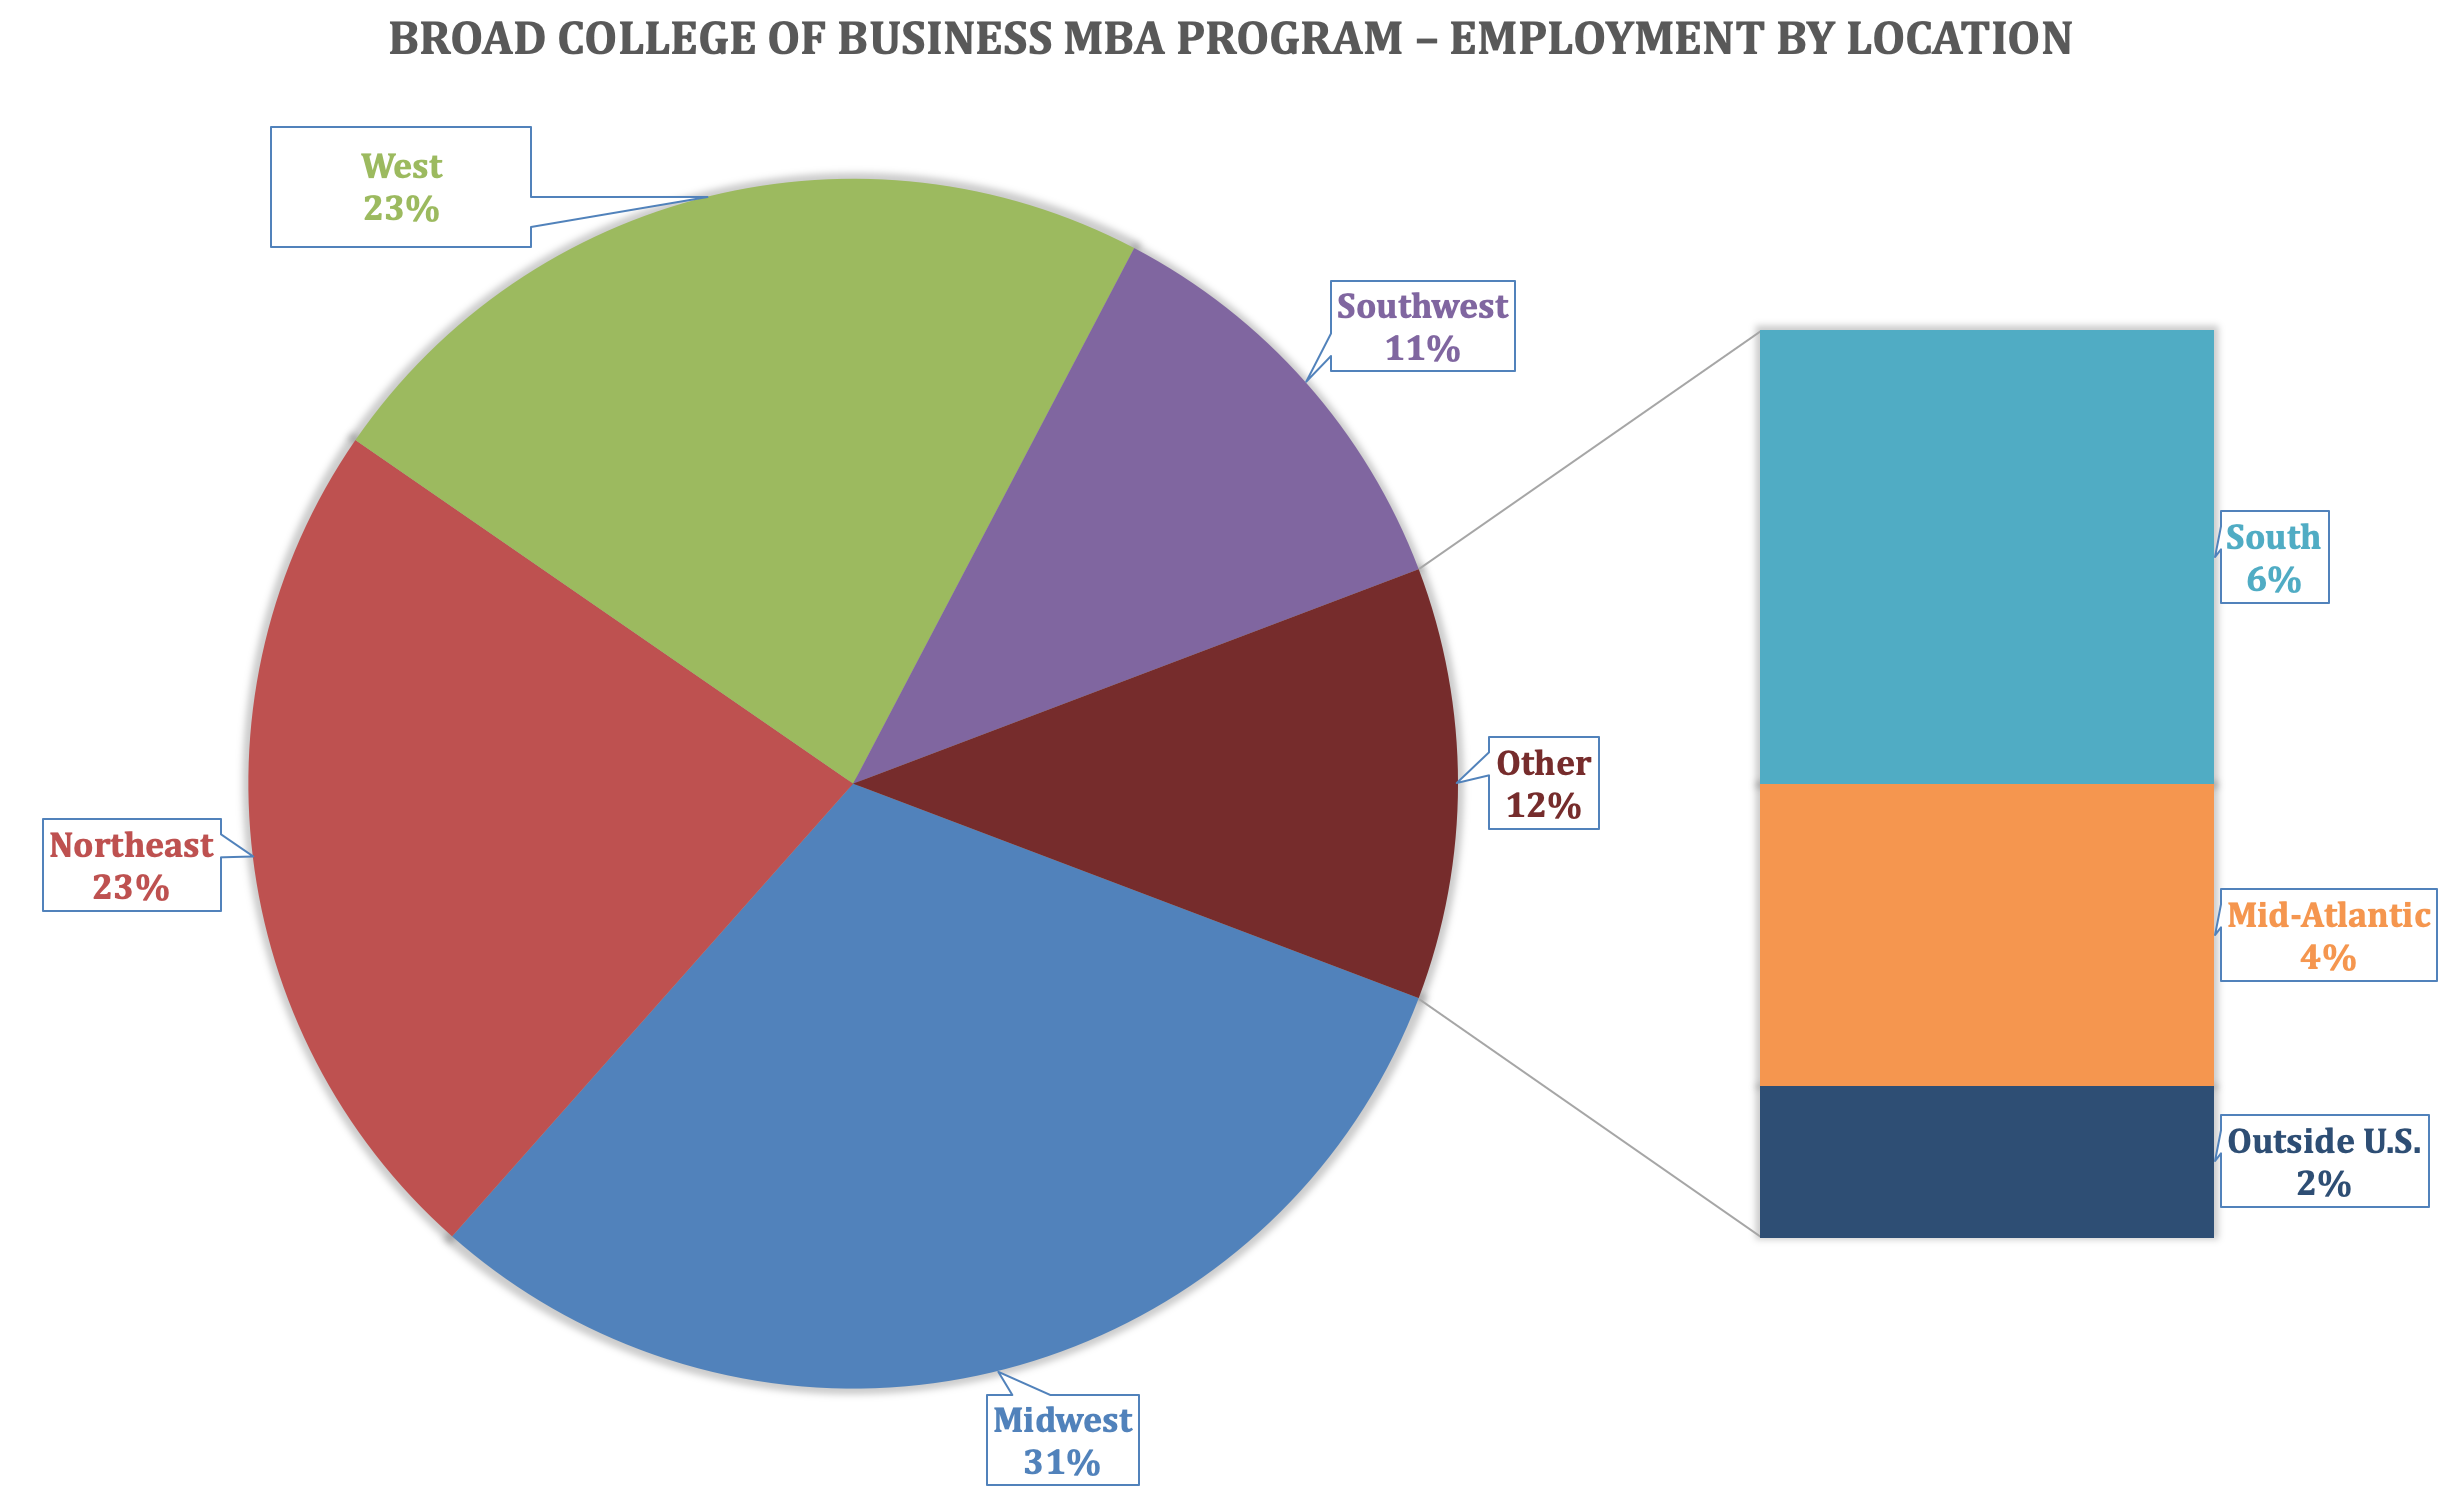 MSU MBA Program - Broad College of Business - Employment by Location